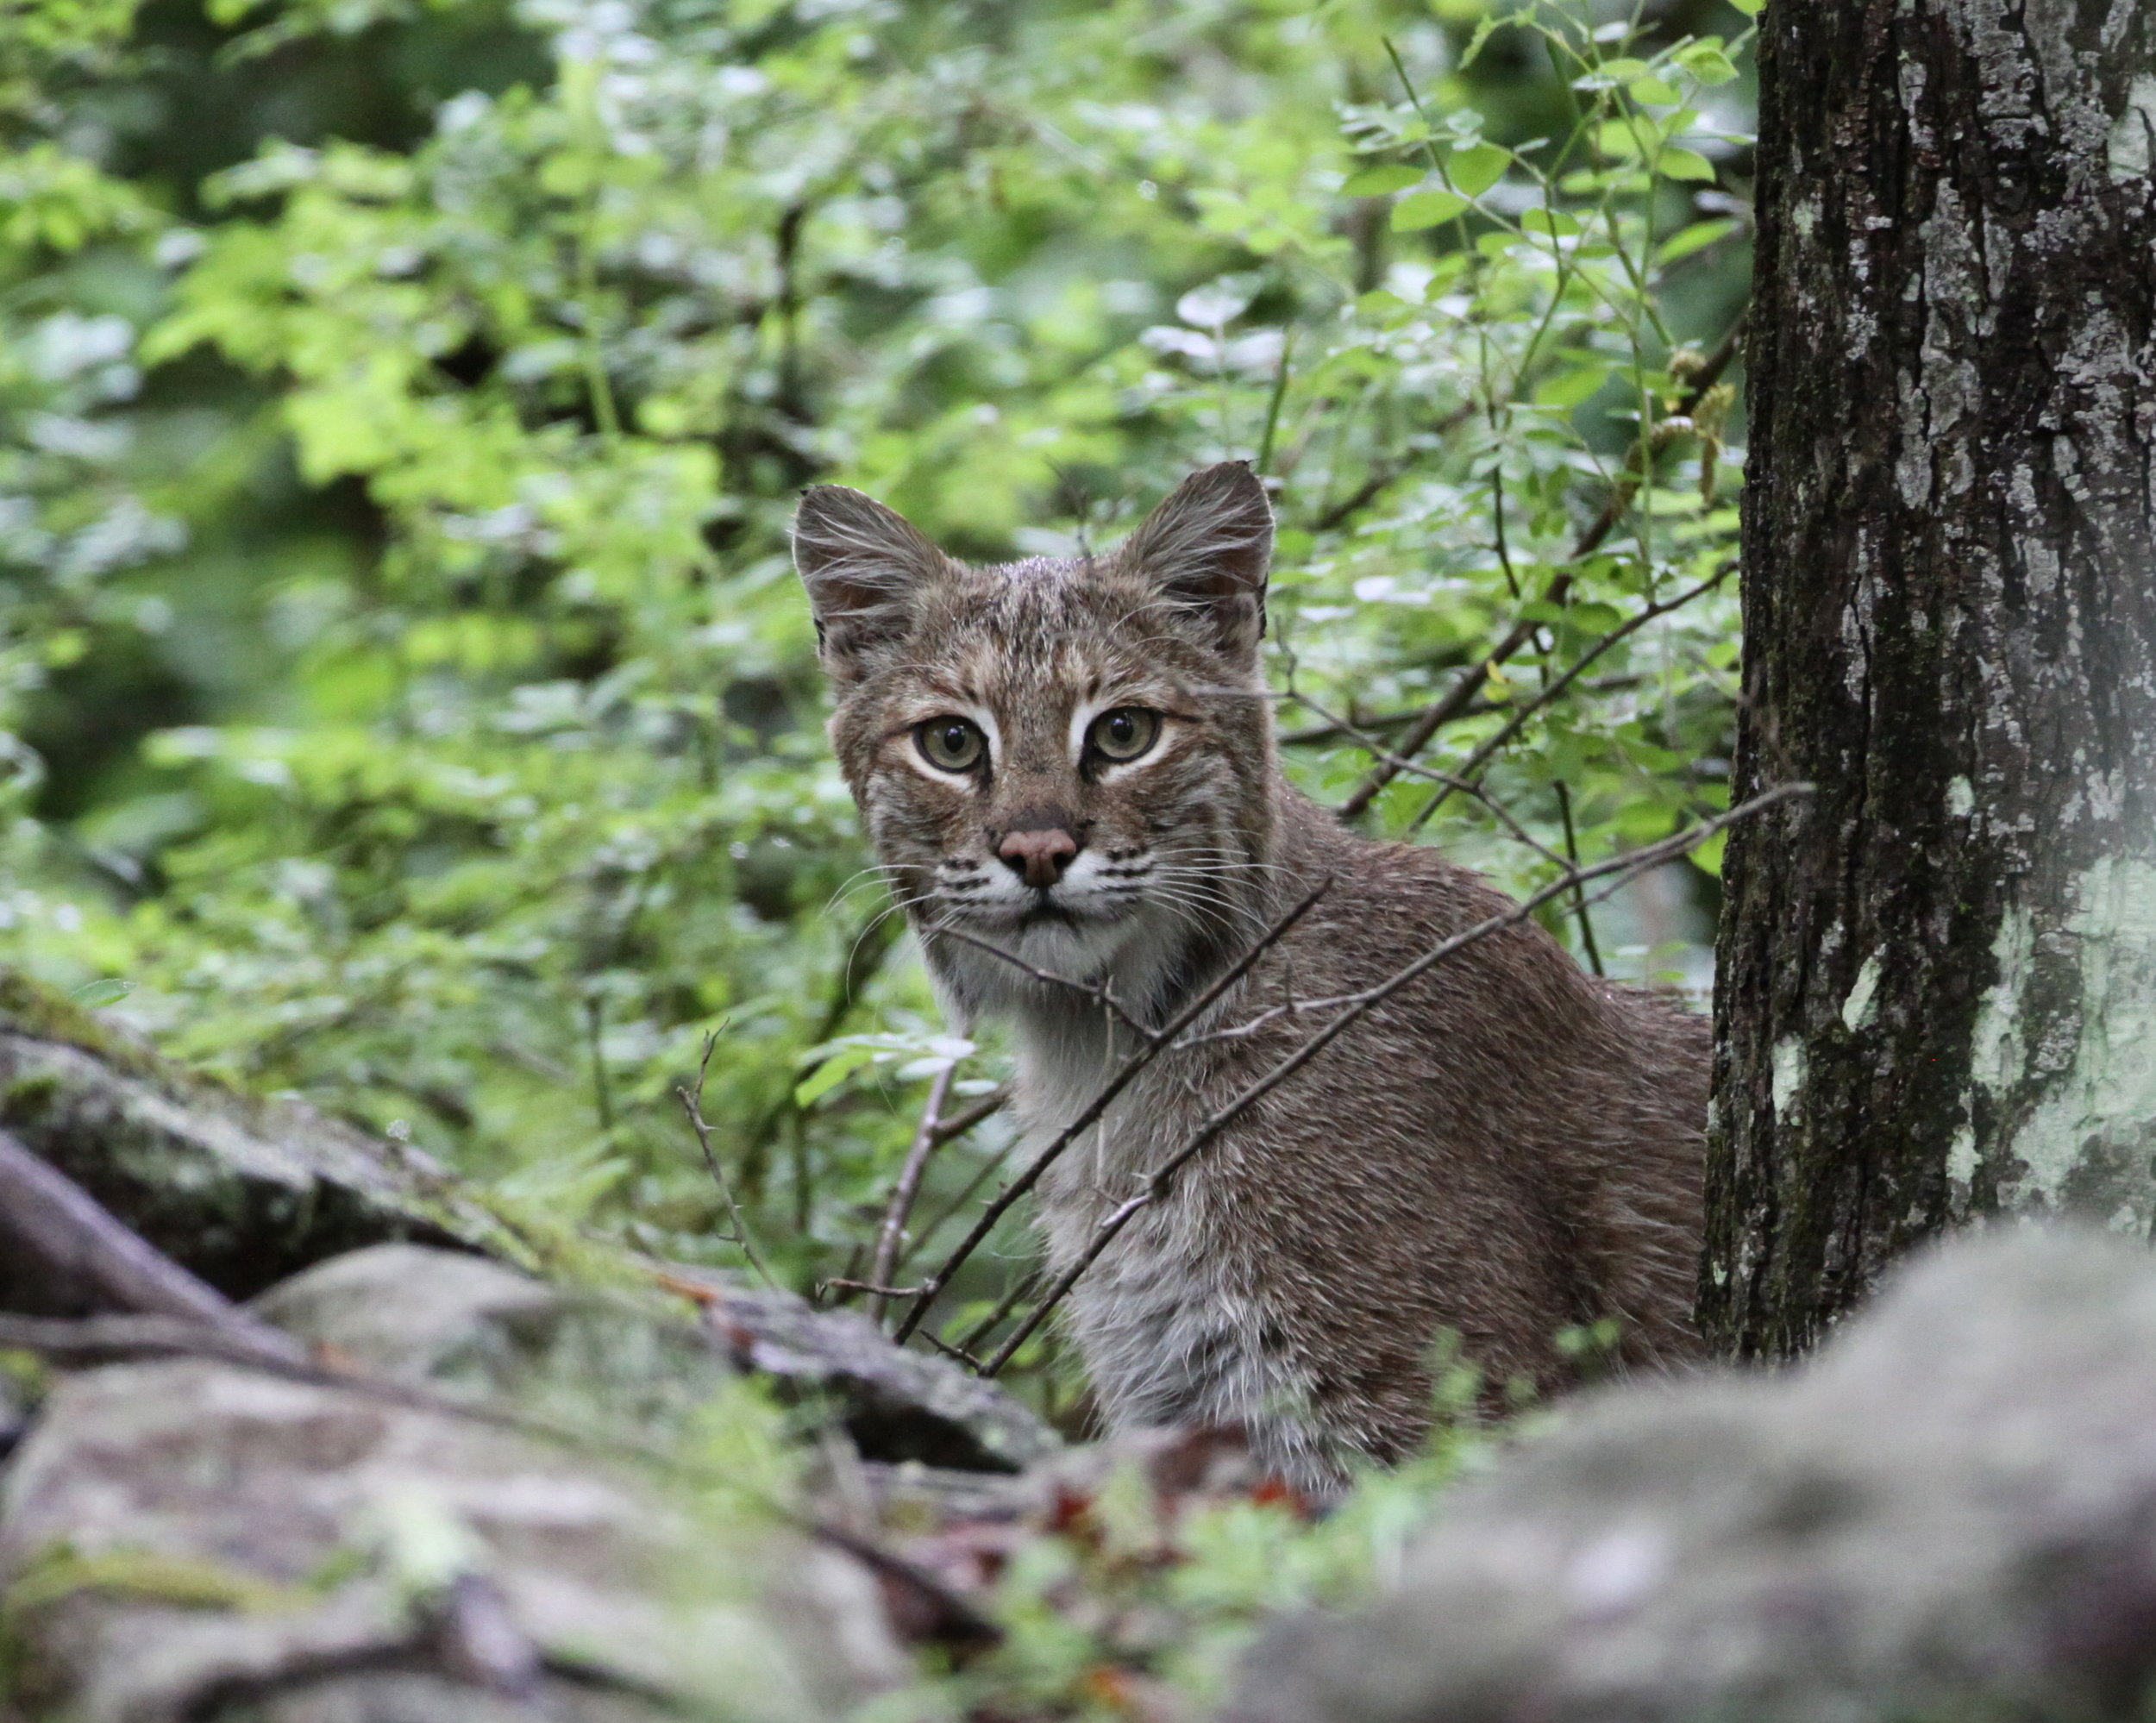 Bobcat in Warren County. Photo by Jim Thomson